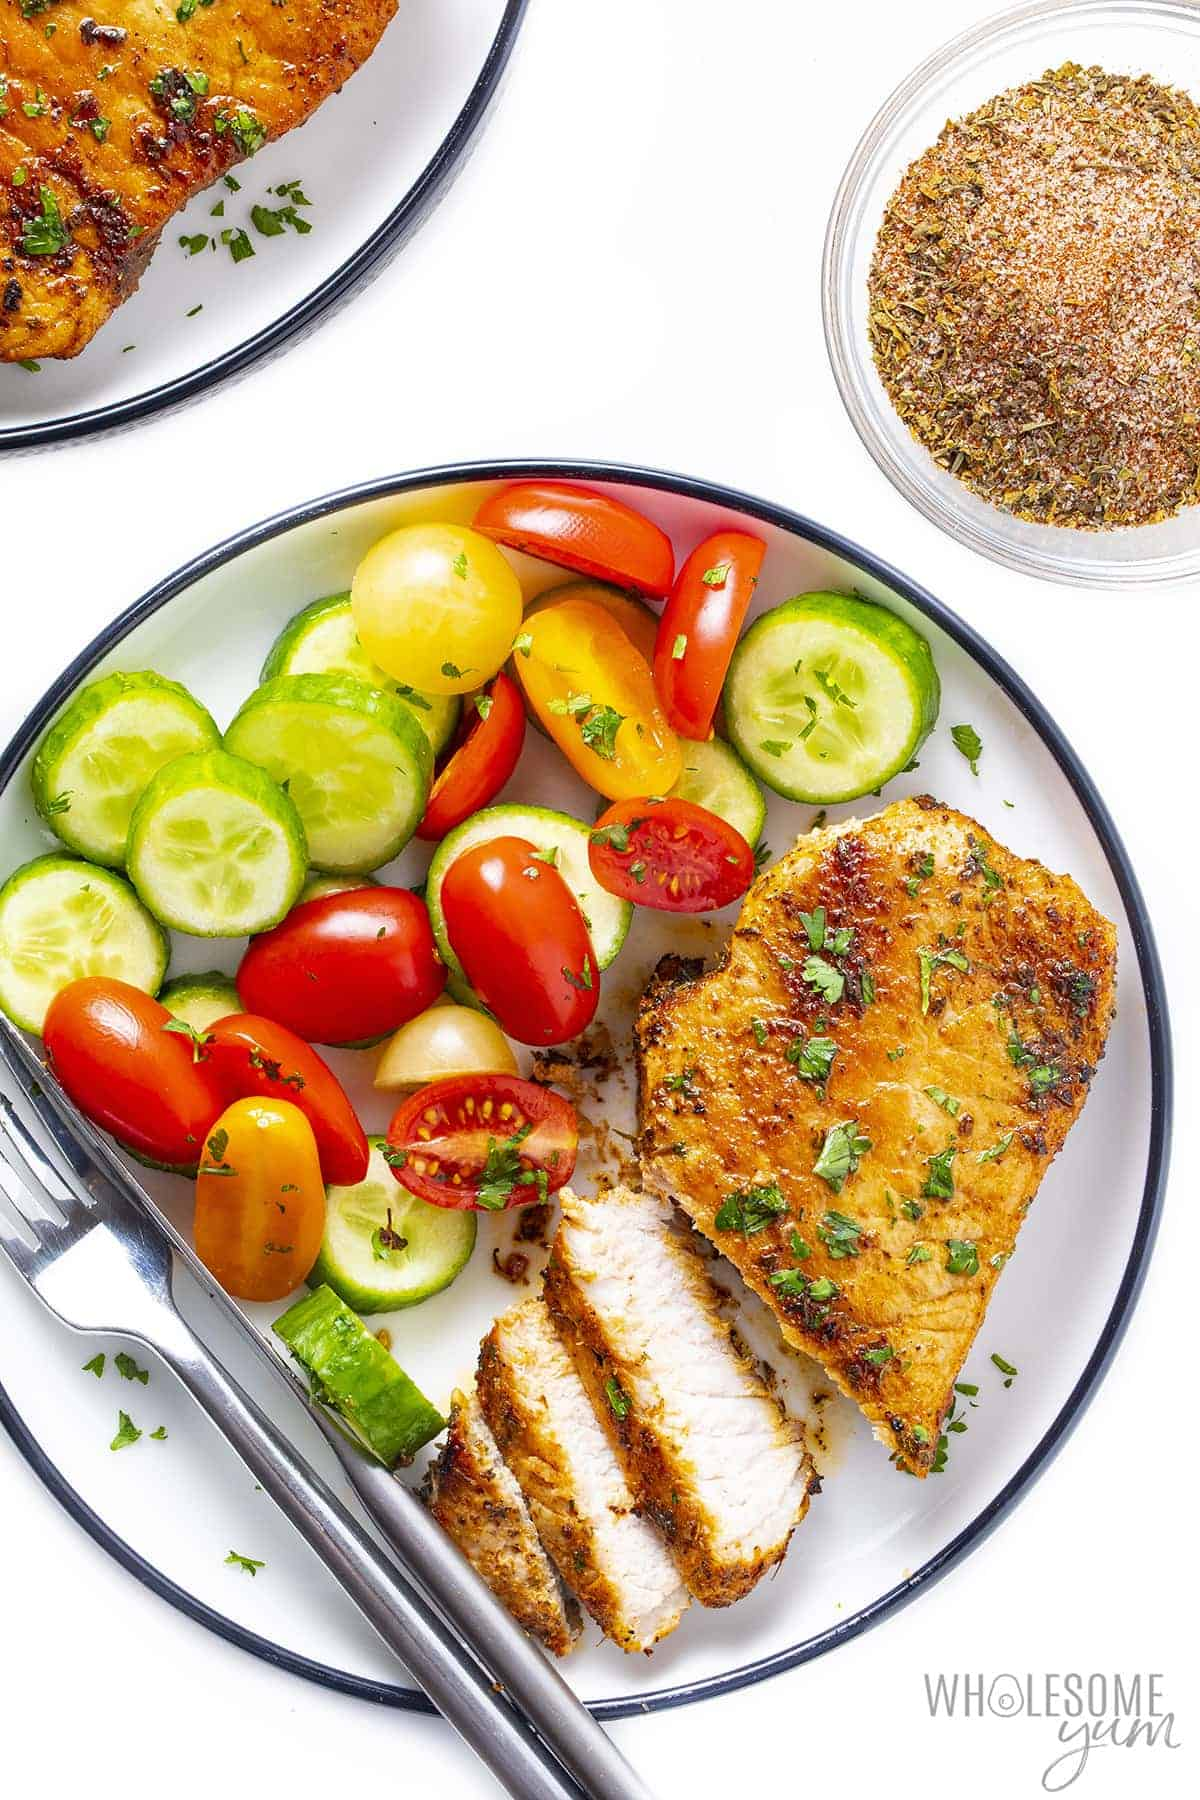 Plate with skillet pork chops and vegetables